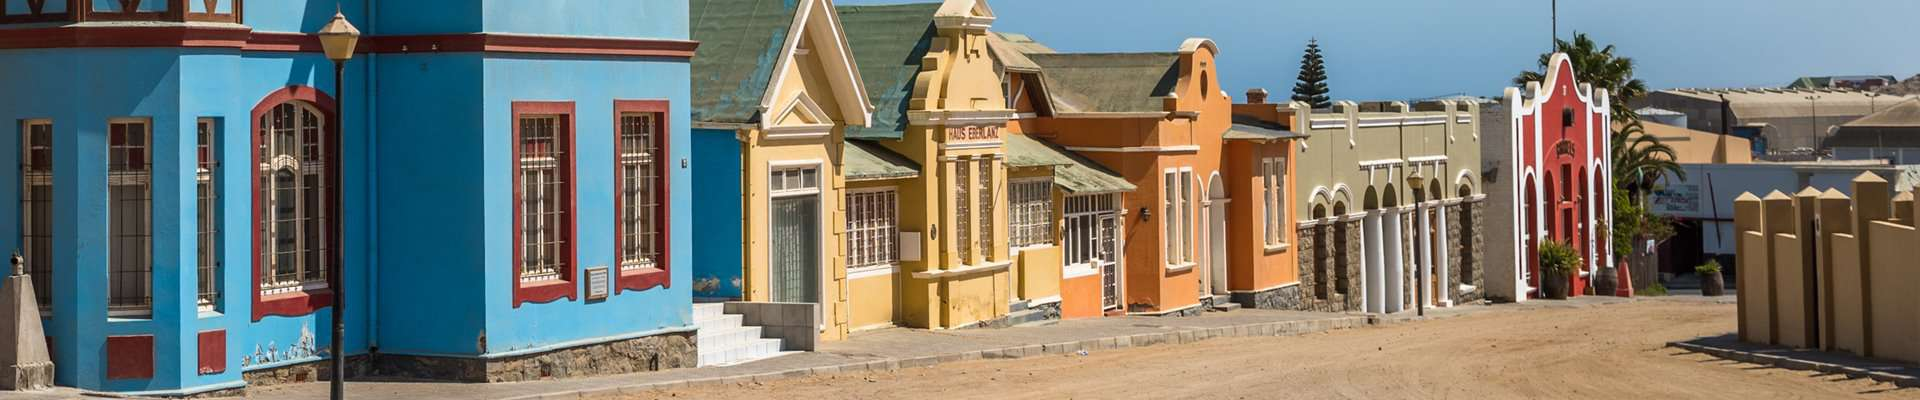 Colour full historic houses in the town of Luderitz, Namibia.